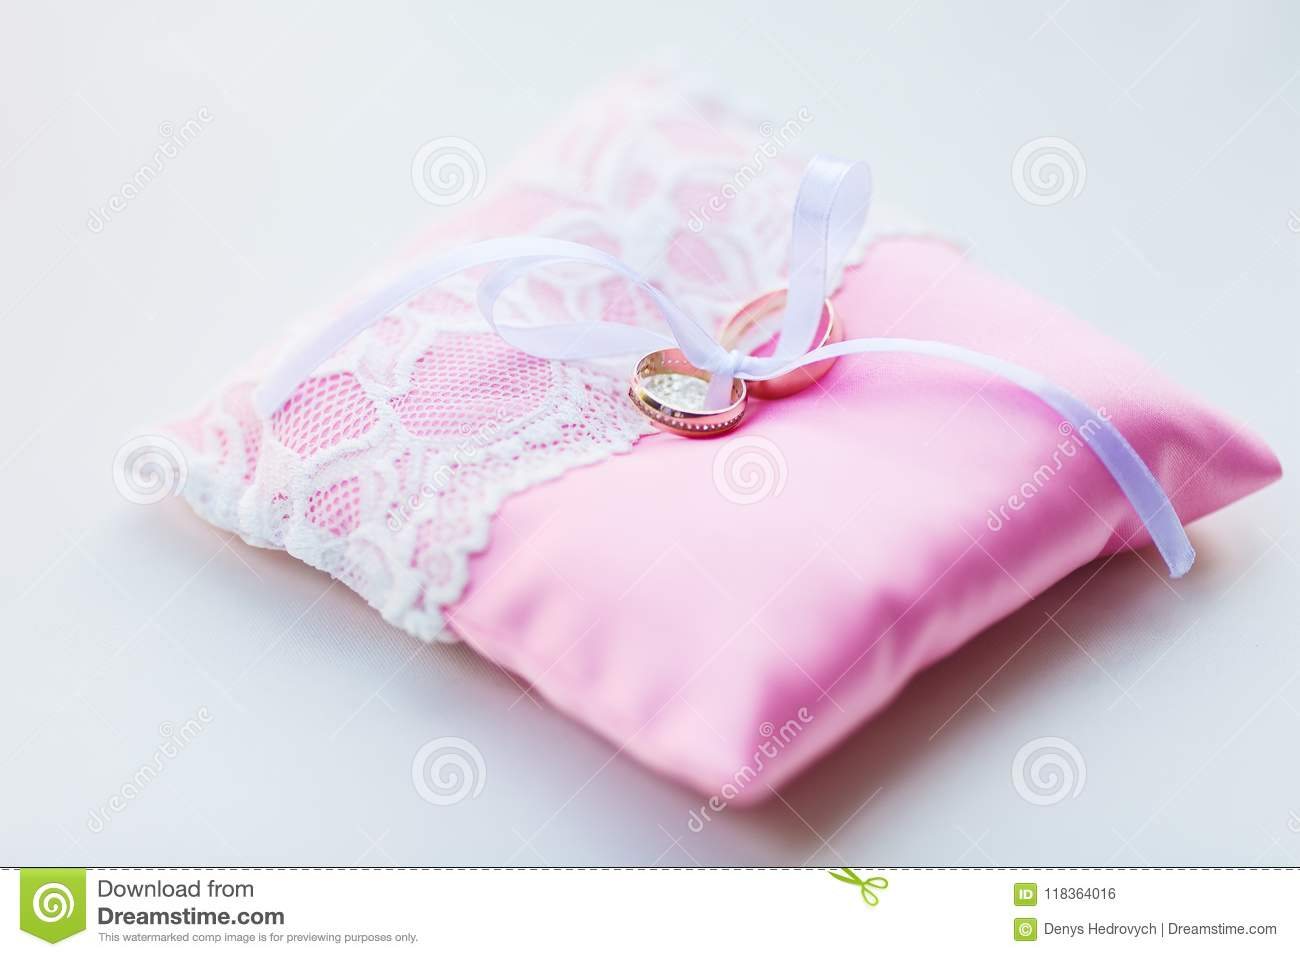 Wedding Rings With Diamonds Lie On The Pink Ceremonial Pillow Stock ...